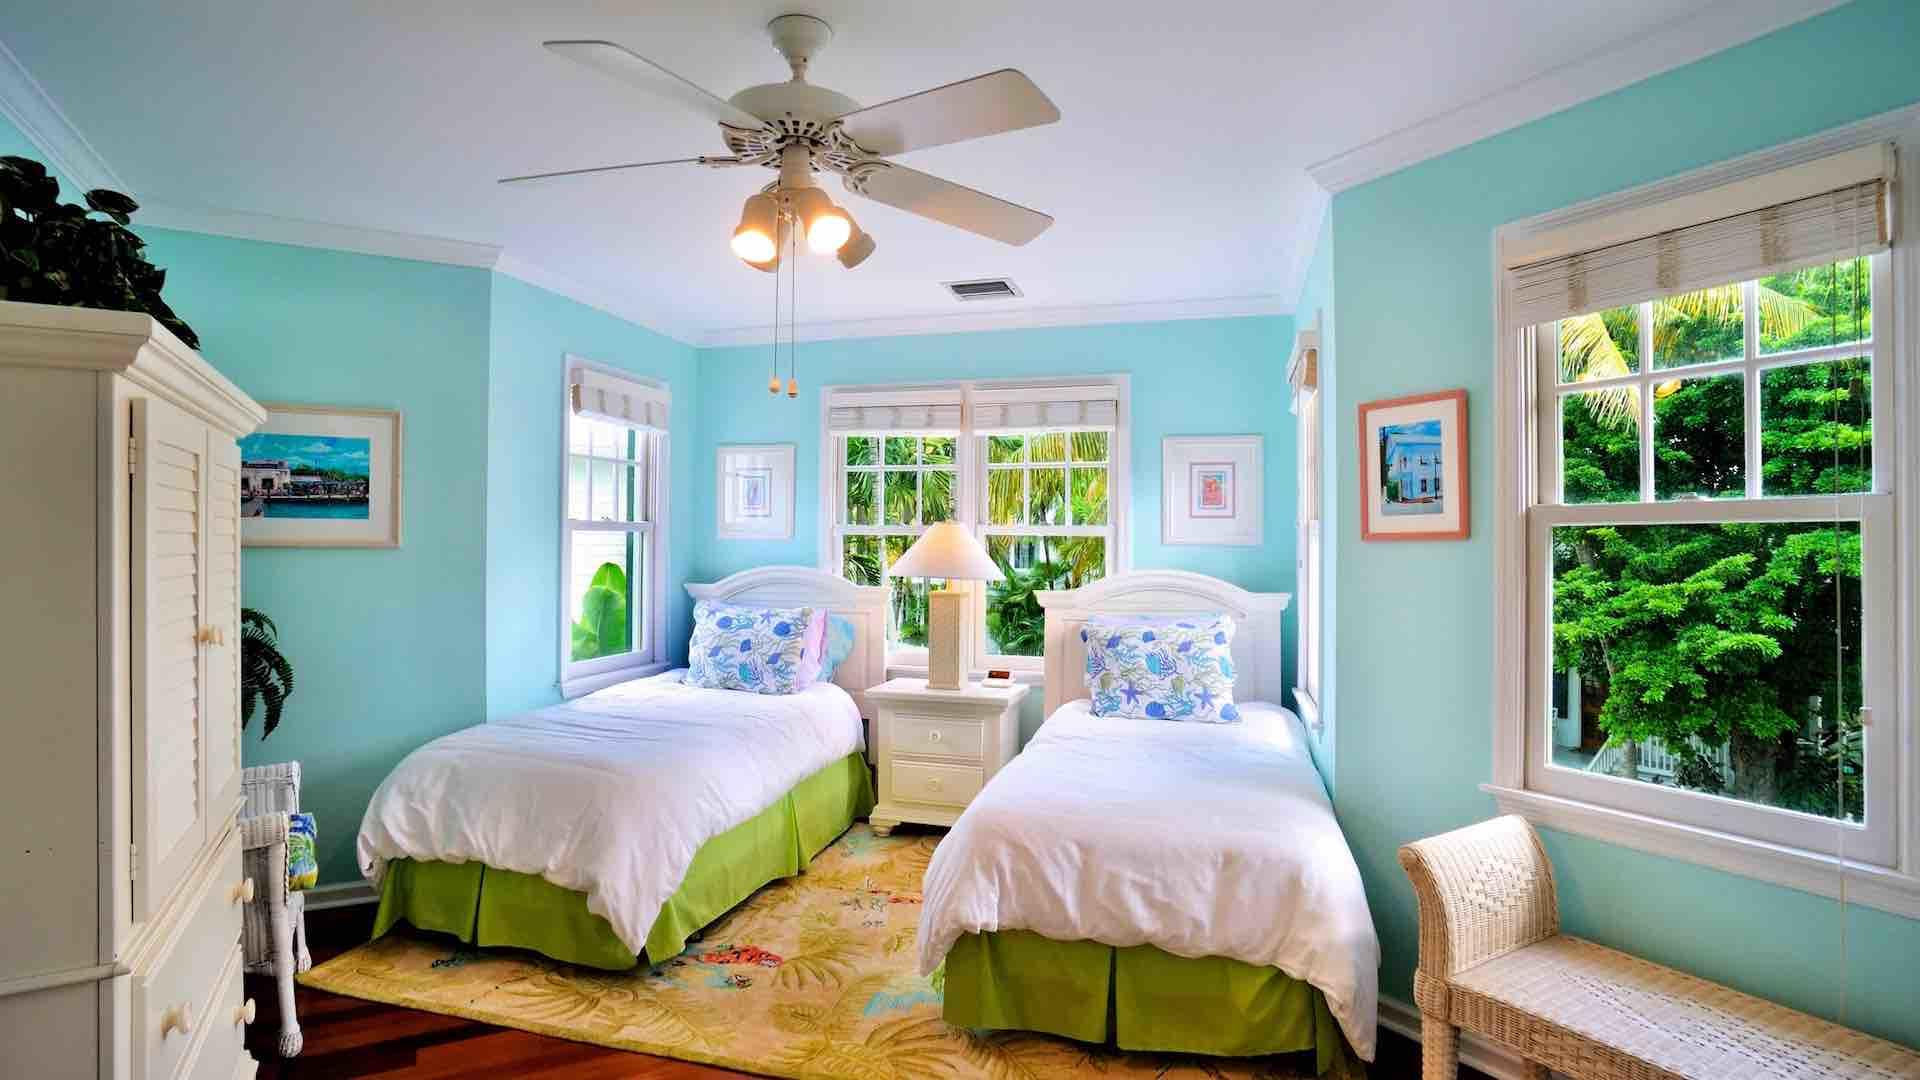 The second bedroom has two twin beds that can convert to a king bed on request...